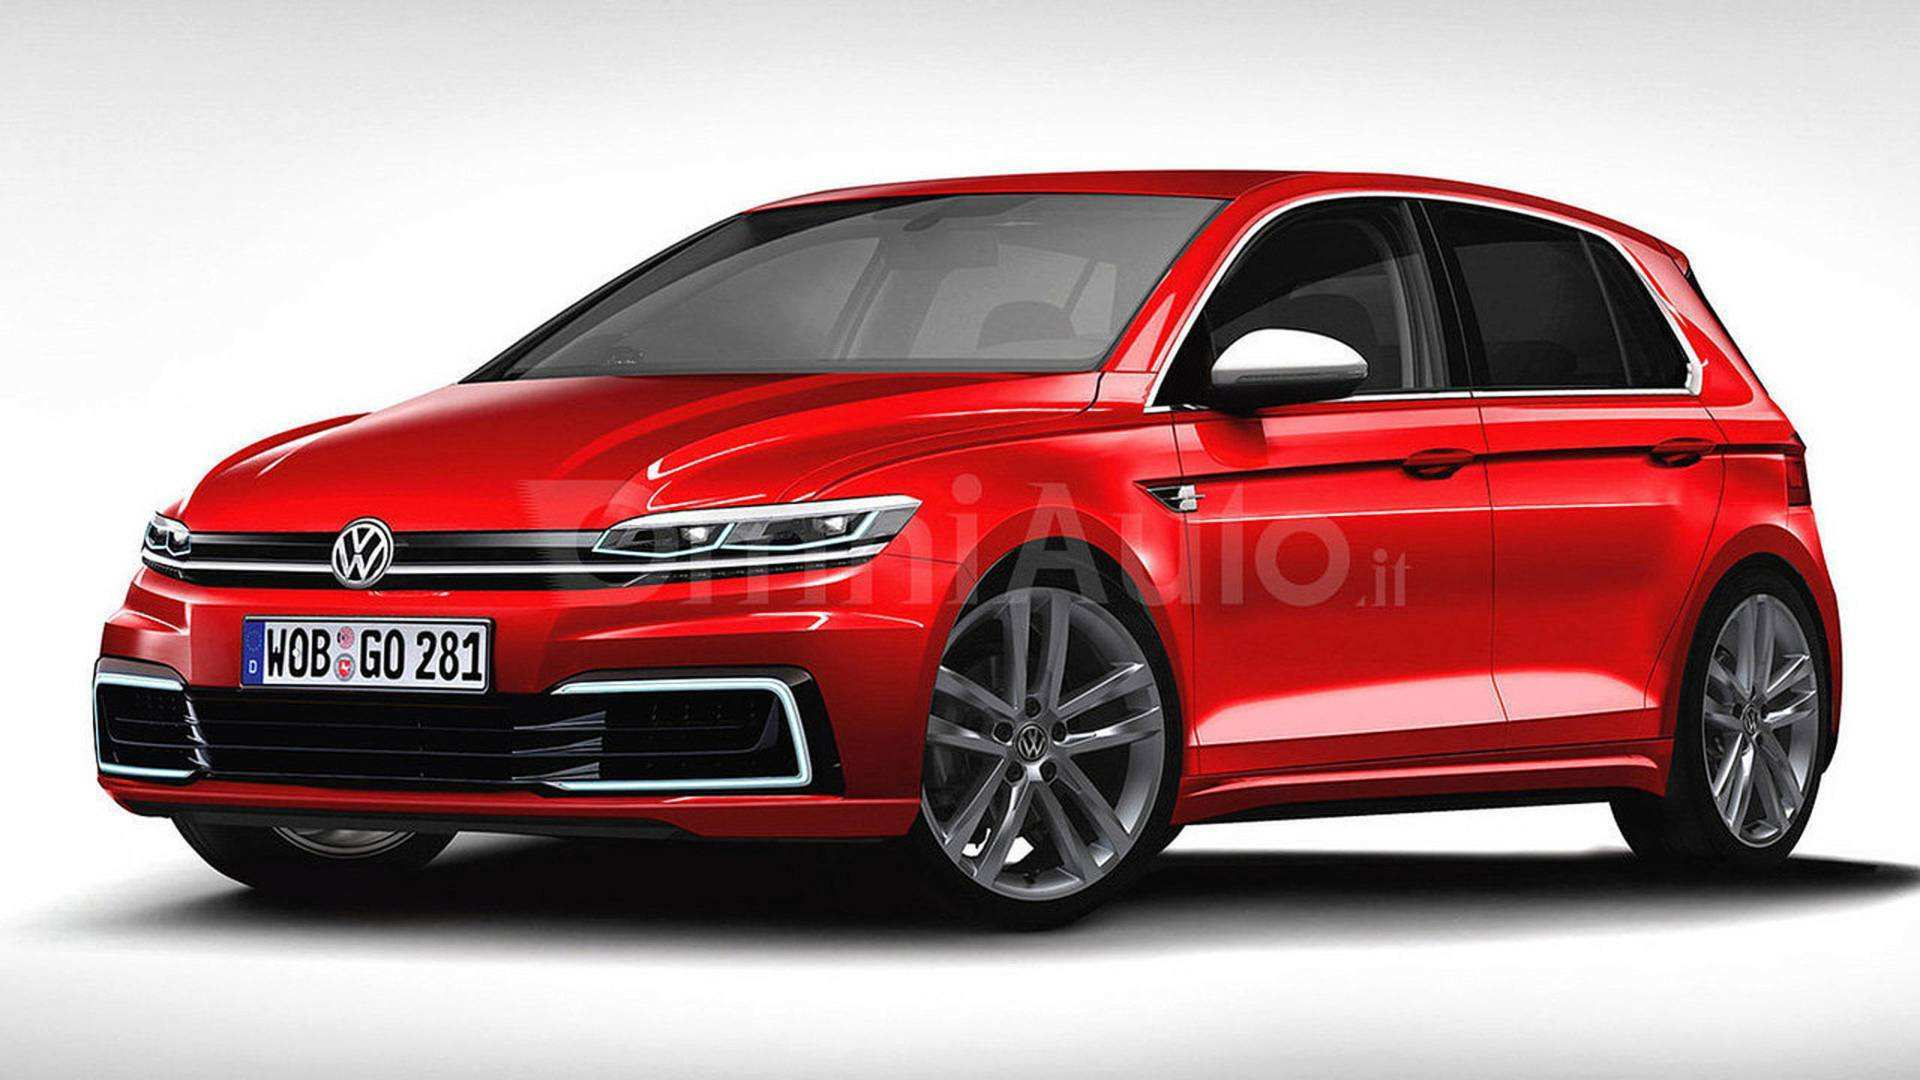 44 Great Volkswagen Upcoming Cars 2020 First Drive with Volkswagen Upcoming Cars 2020